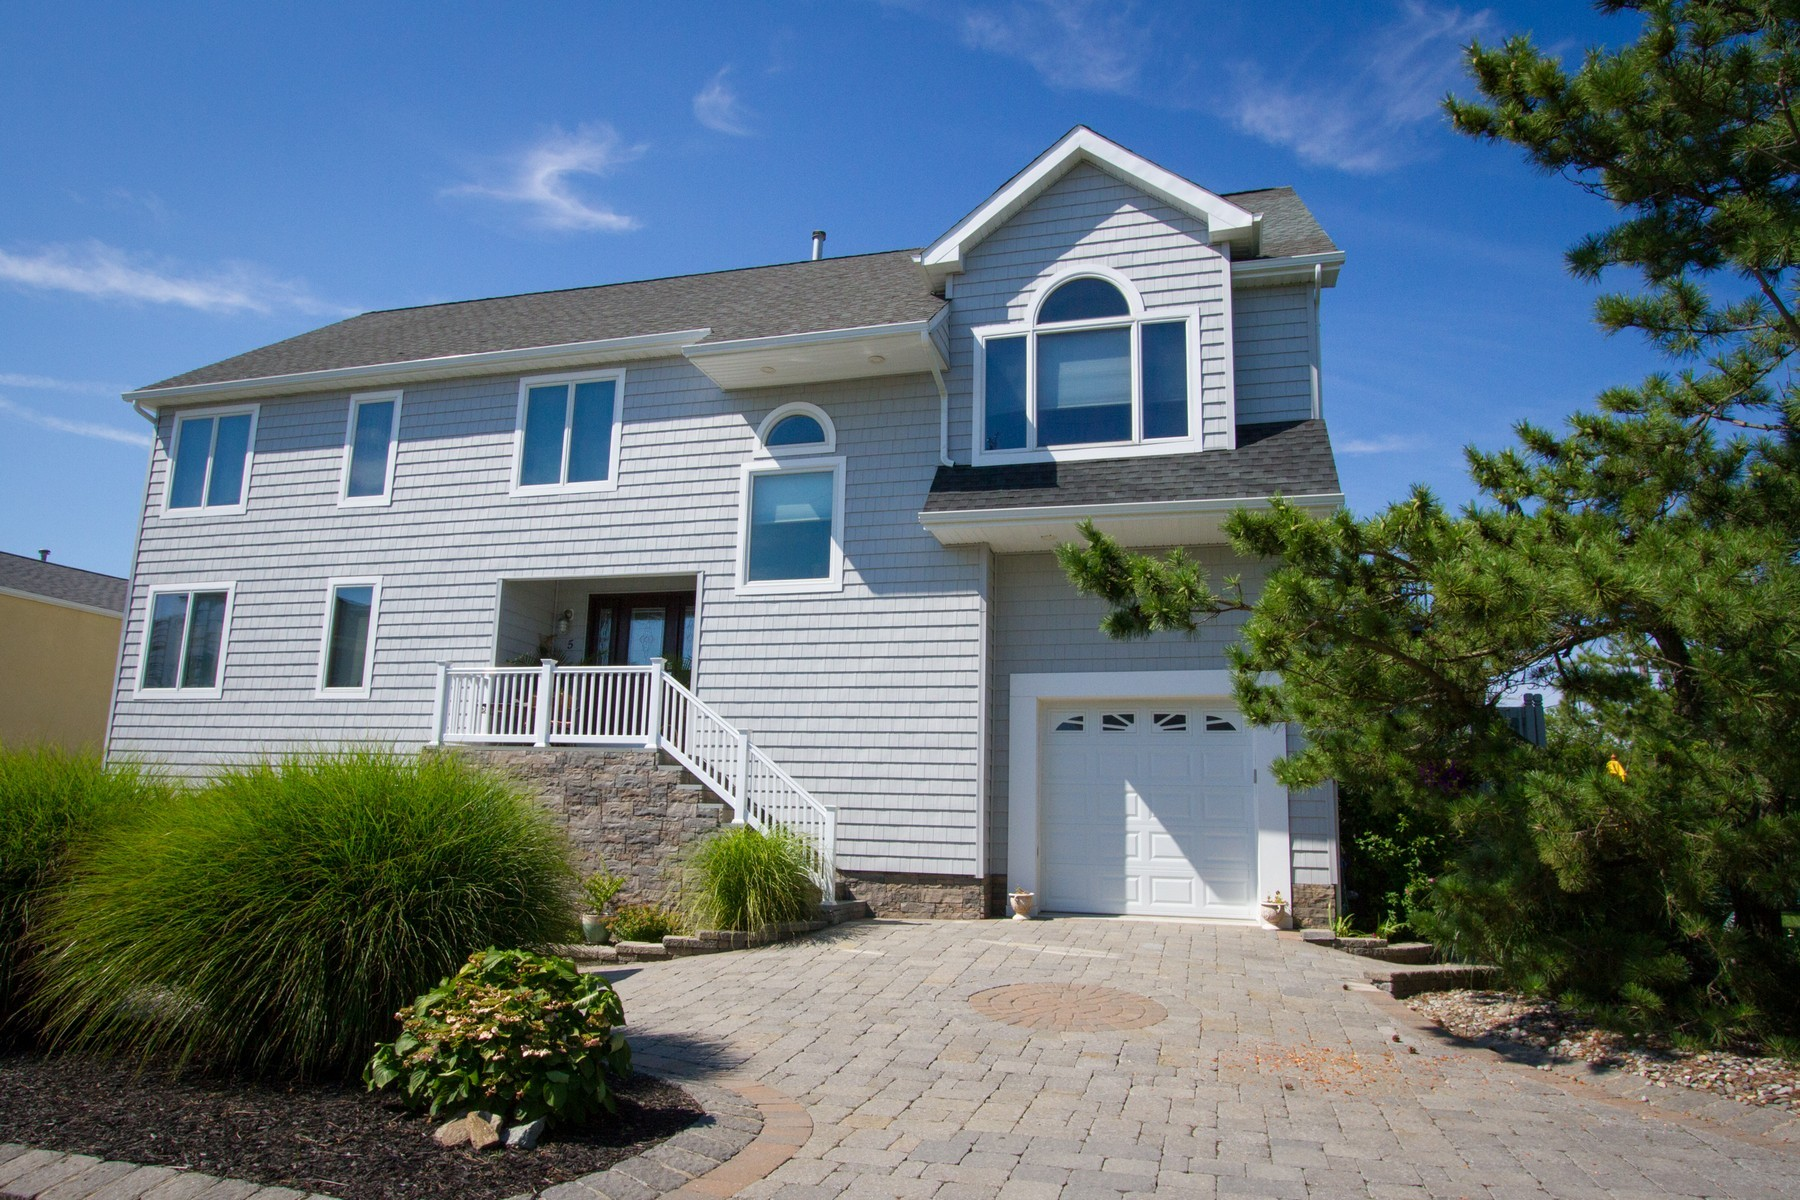 Single Family Home for Sale at Every home is a masterpiece 5 Sunset Lane Monmouth Beach, New Jersey 07750 United States